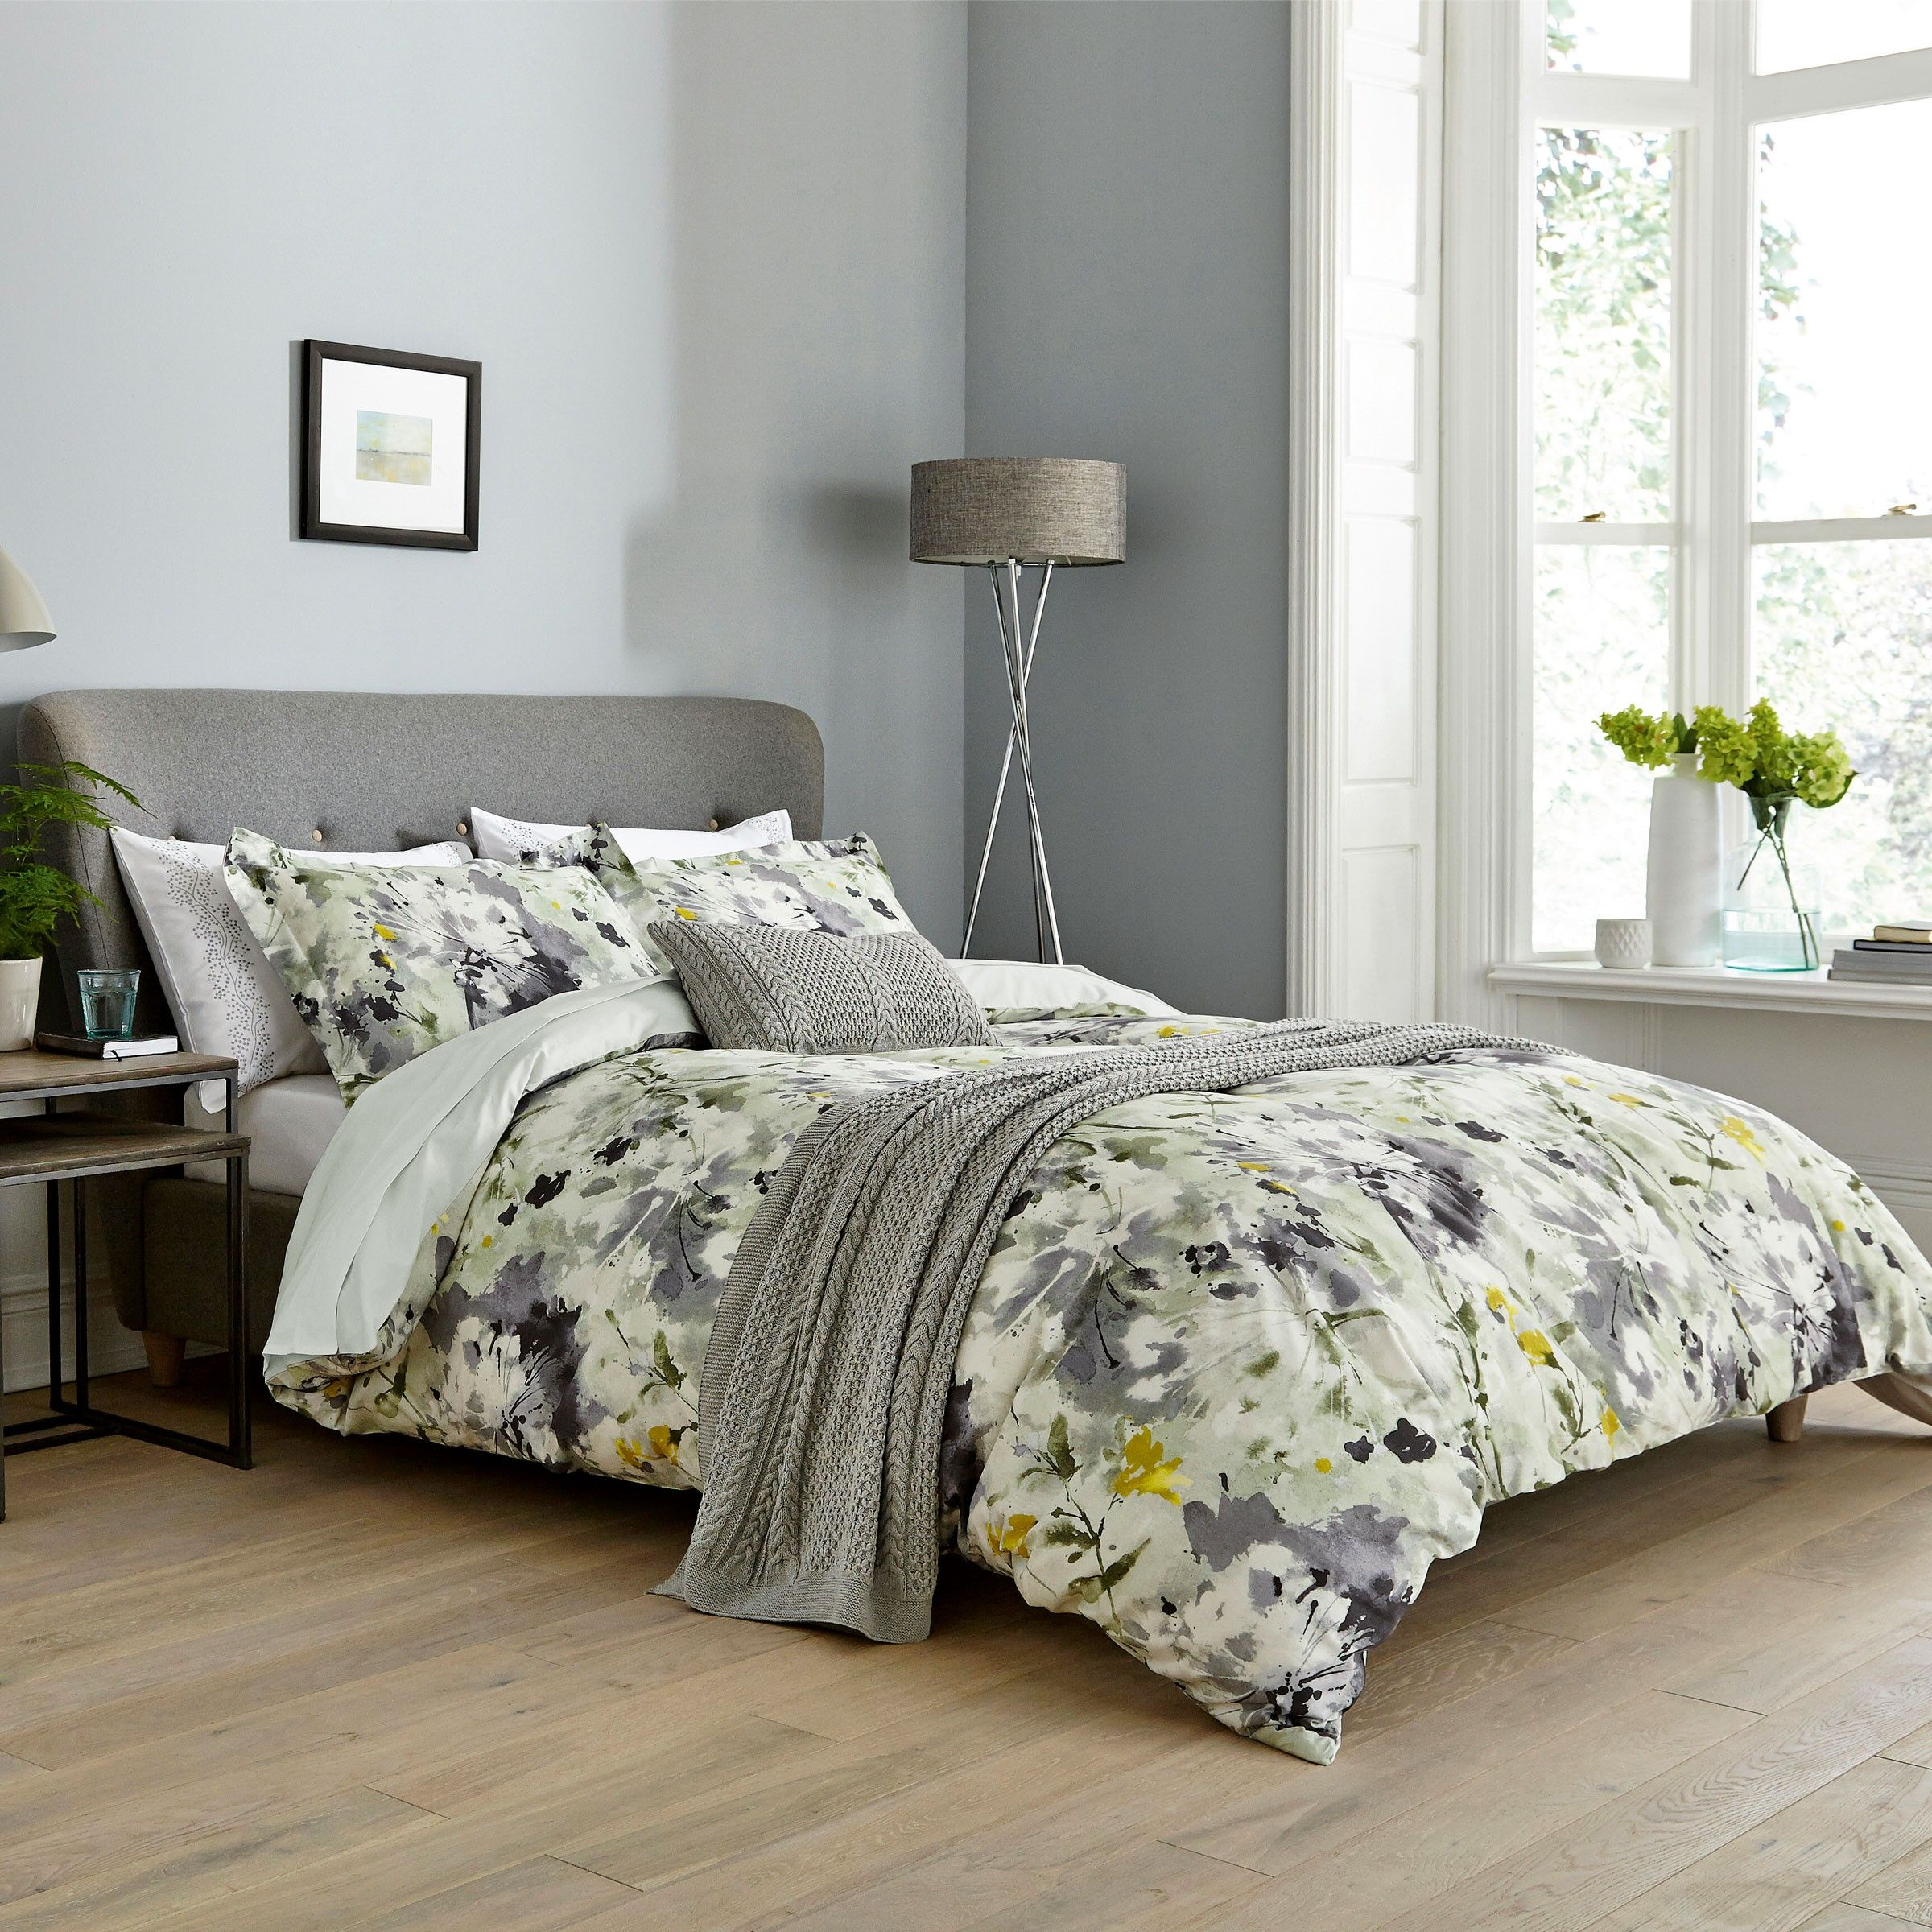 set project and bedding product duvet diamond gray yellow cottage comforter ikat duvets